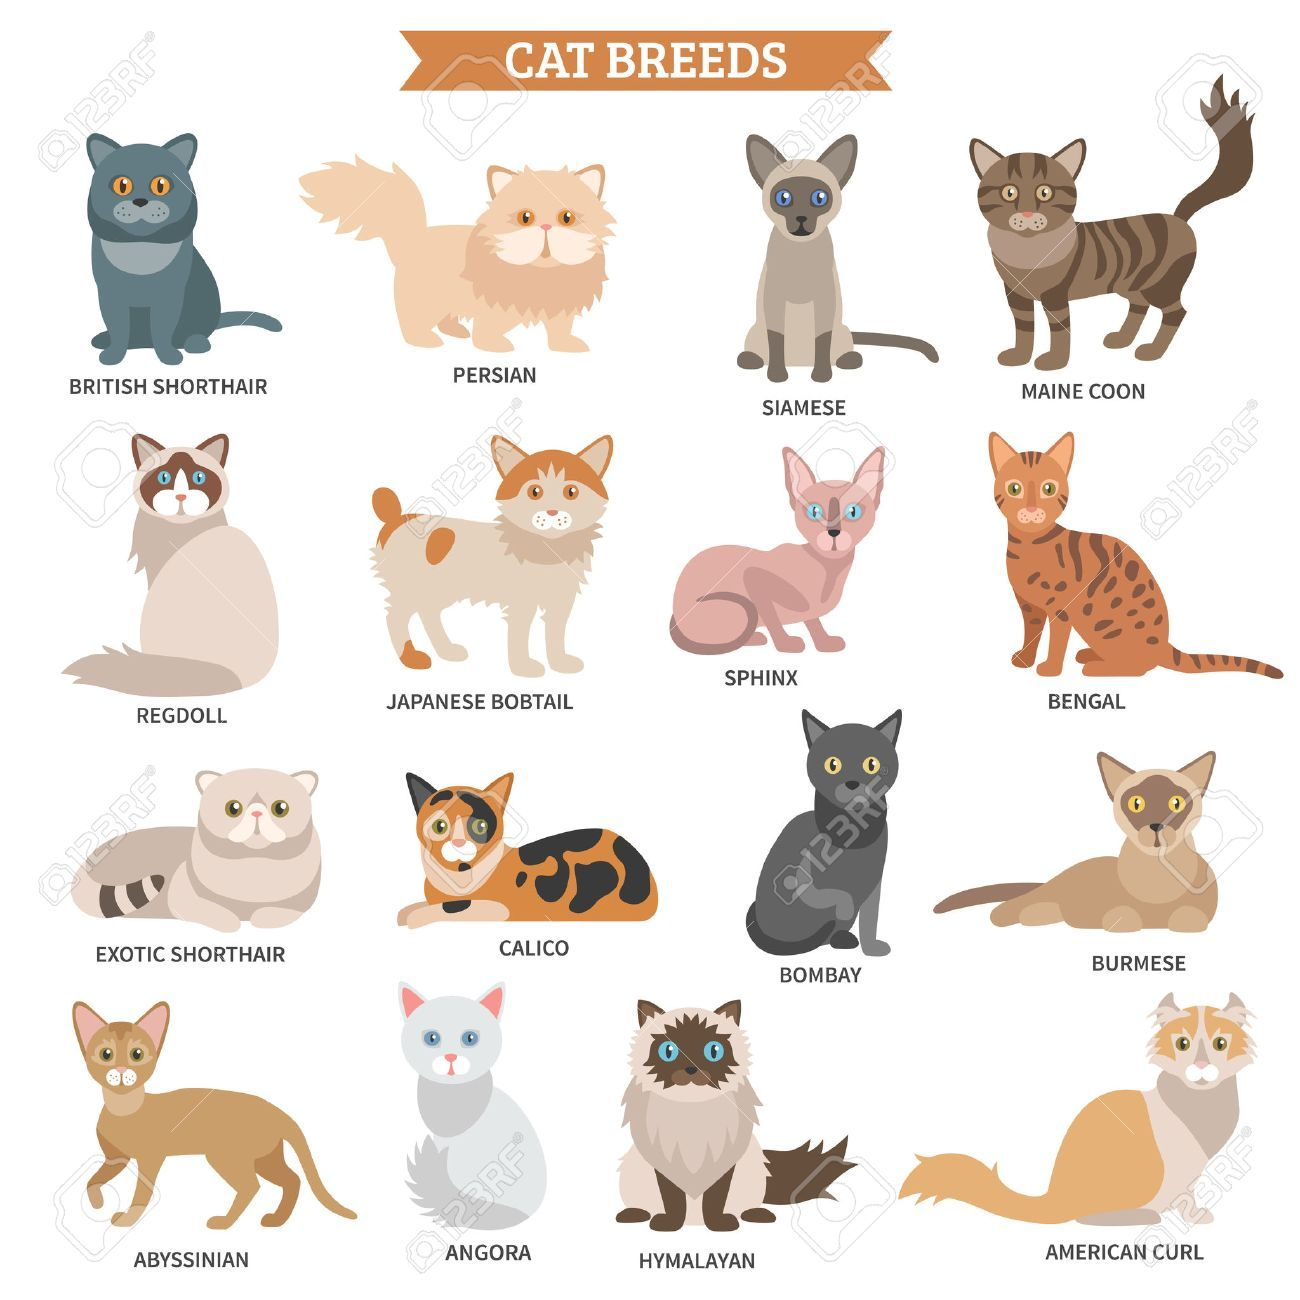 The Following List Of Cat Breeds Includes Only Domestic Cat Breeds